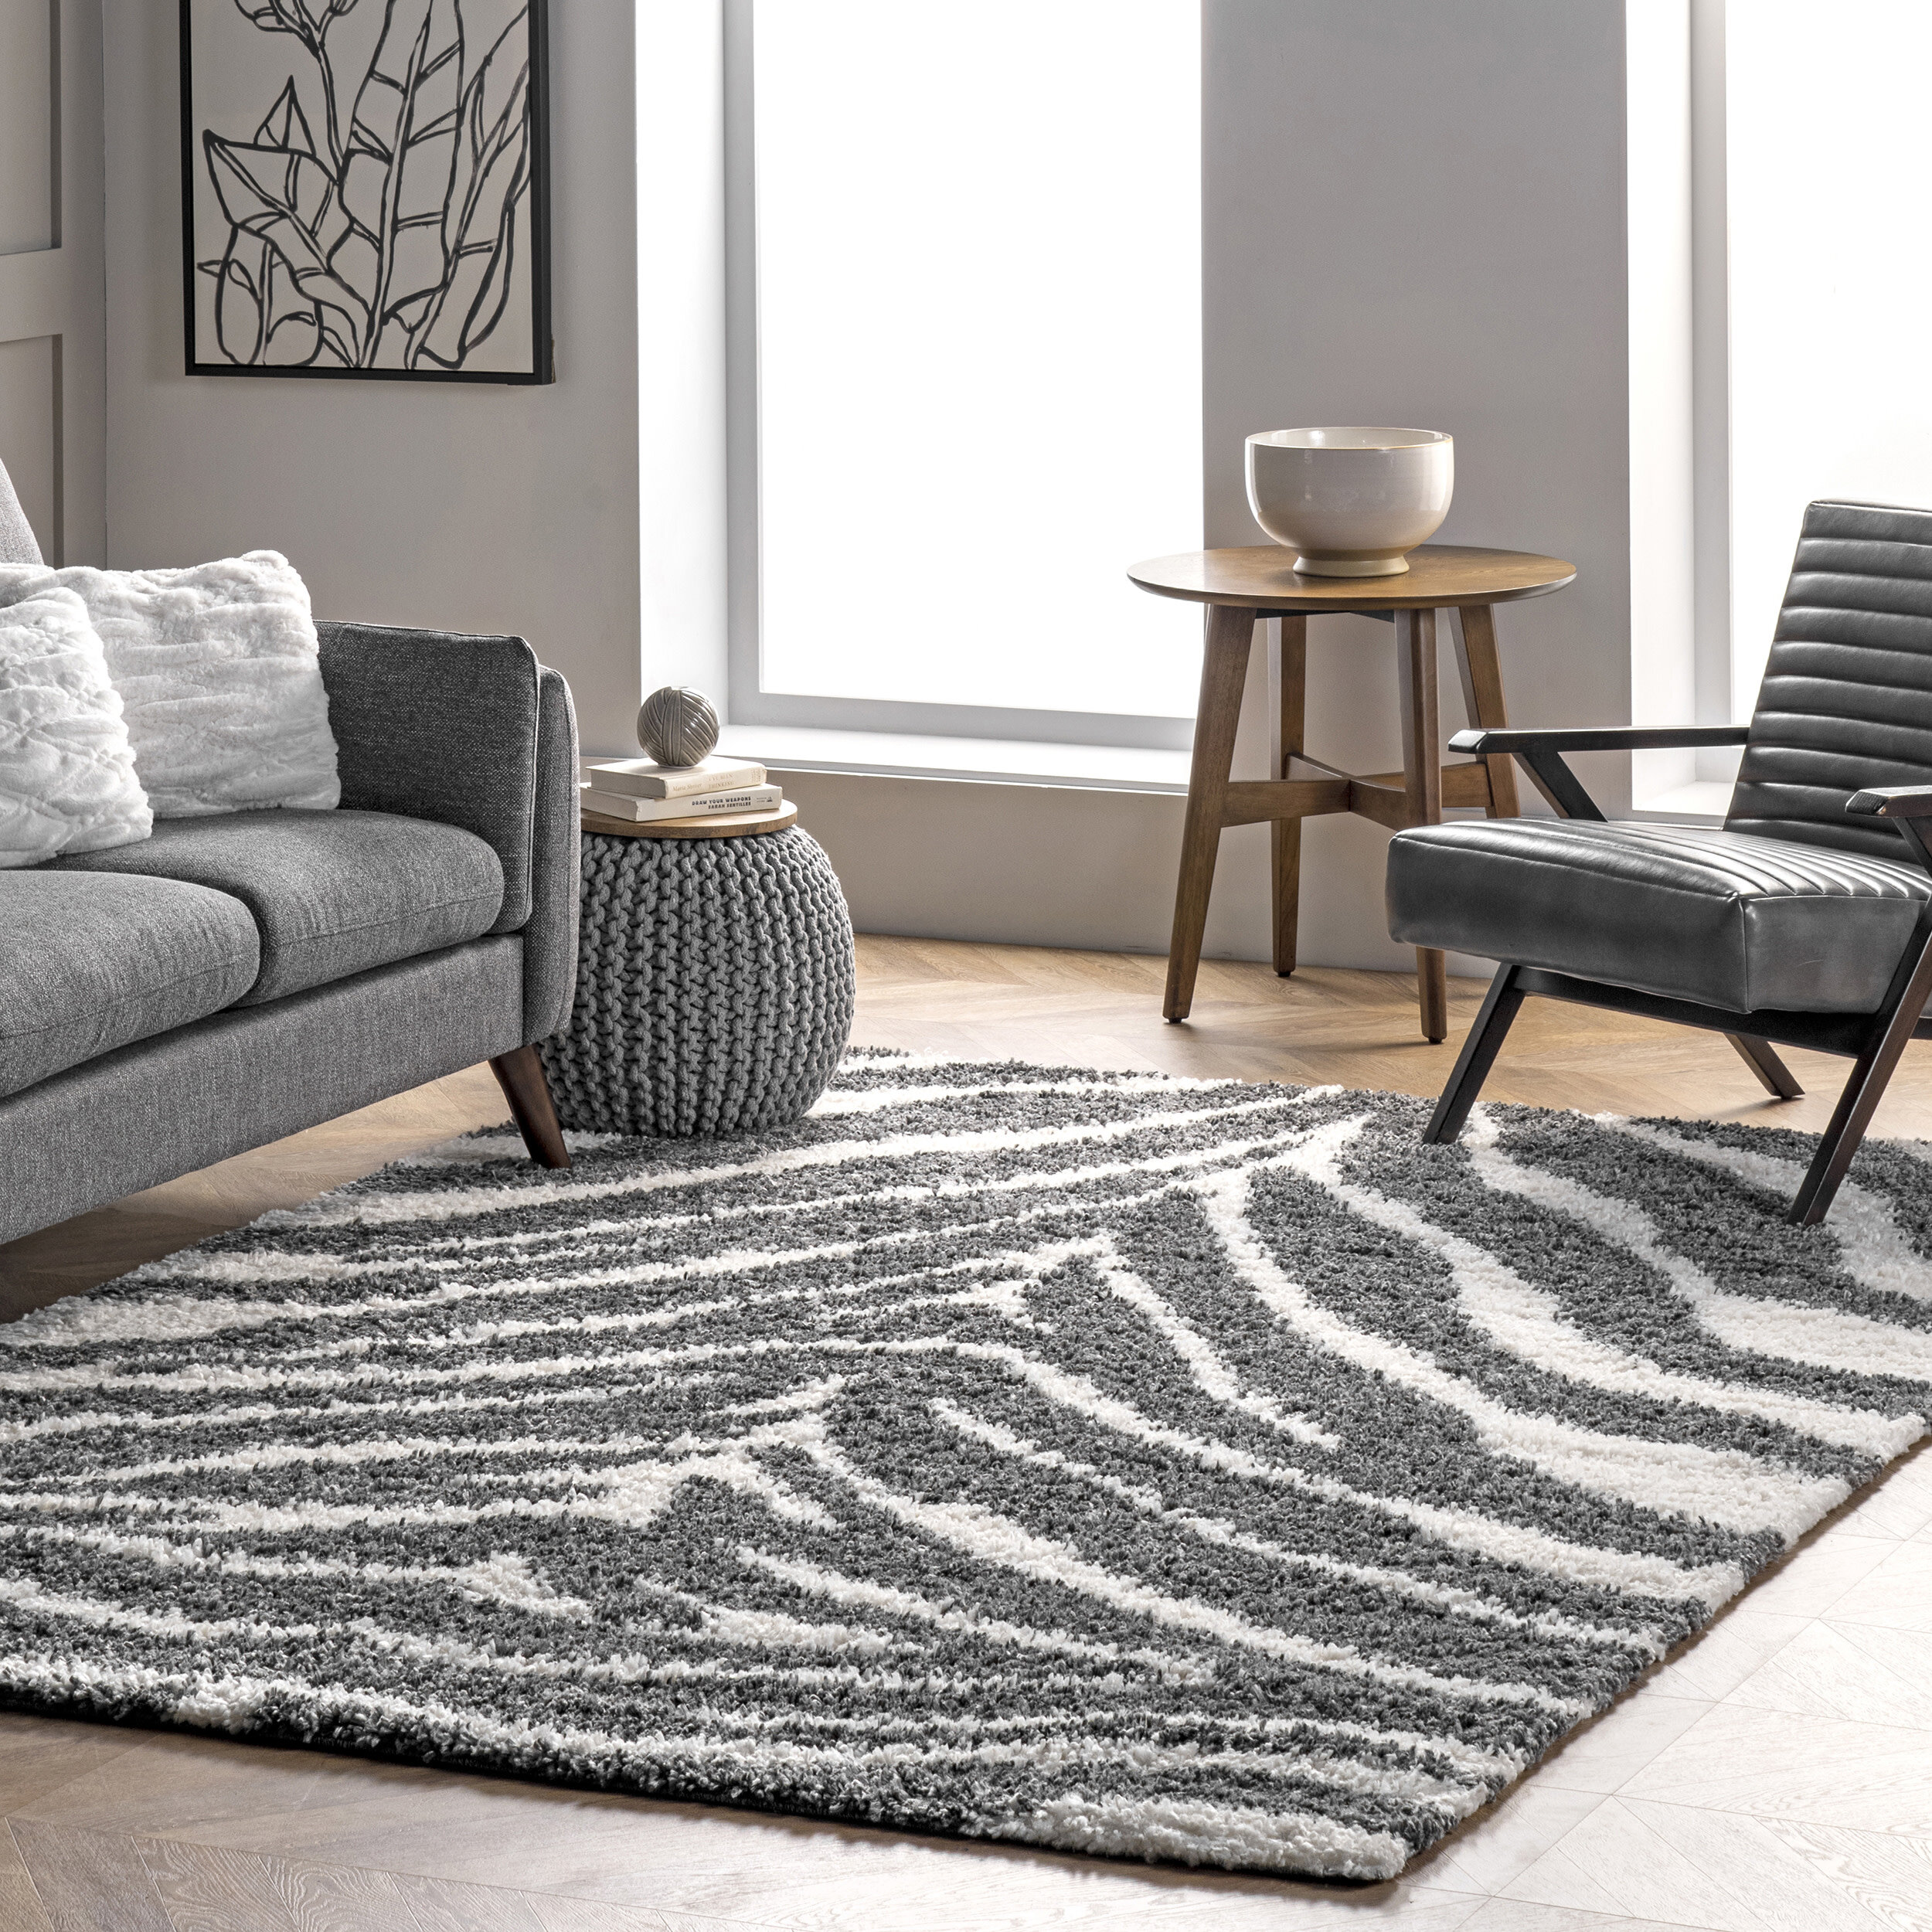 Animal Print Thick Pile Area Rugs You Ll Love In 2021 Wayfair